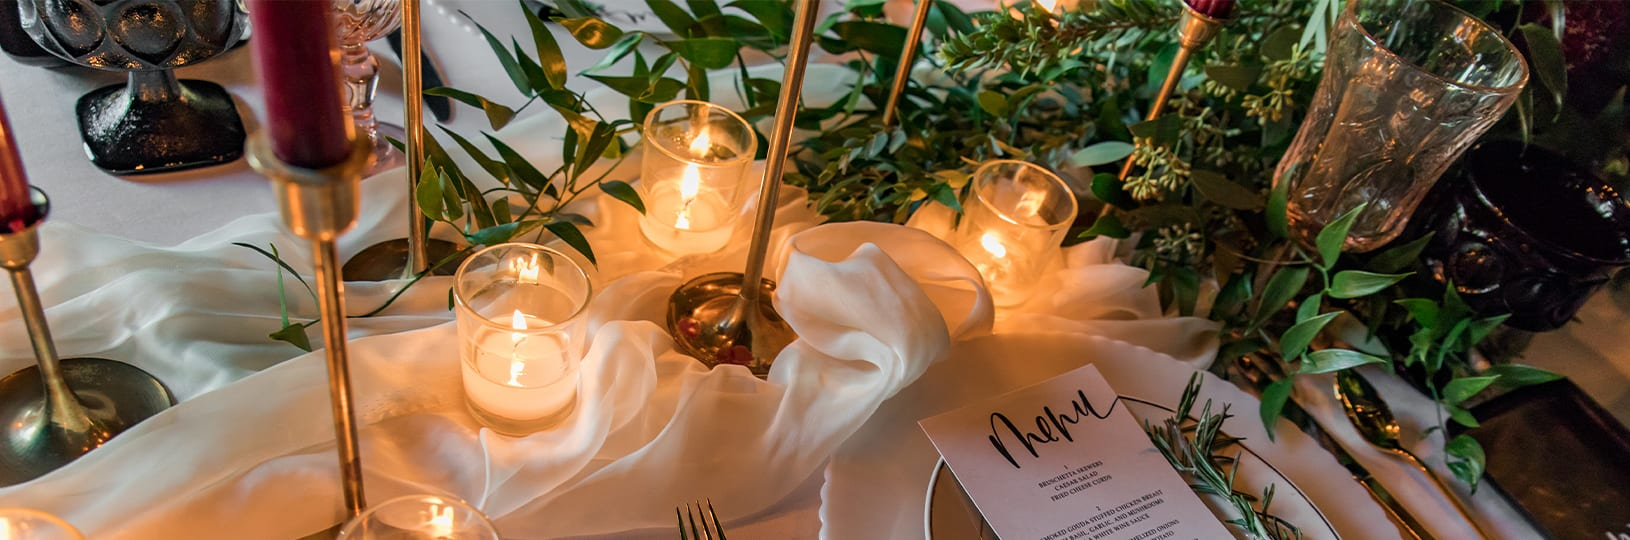 Wedding table centerpiece with name tag and candles